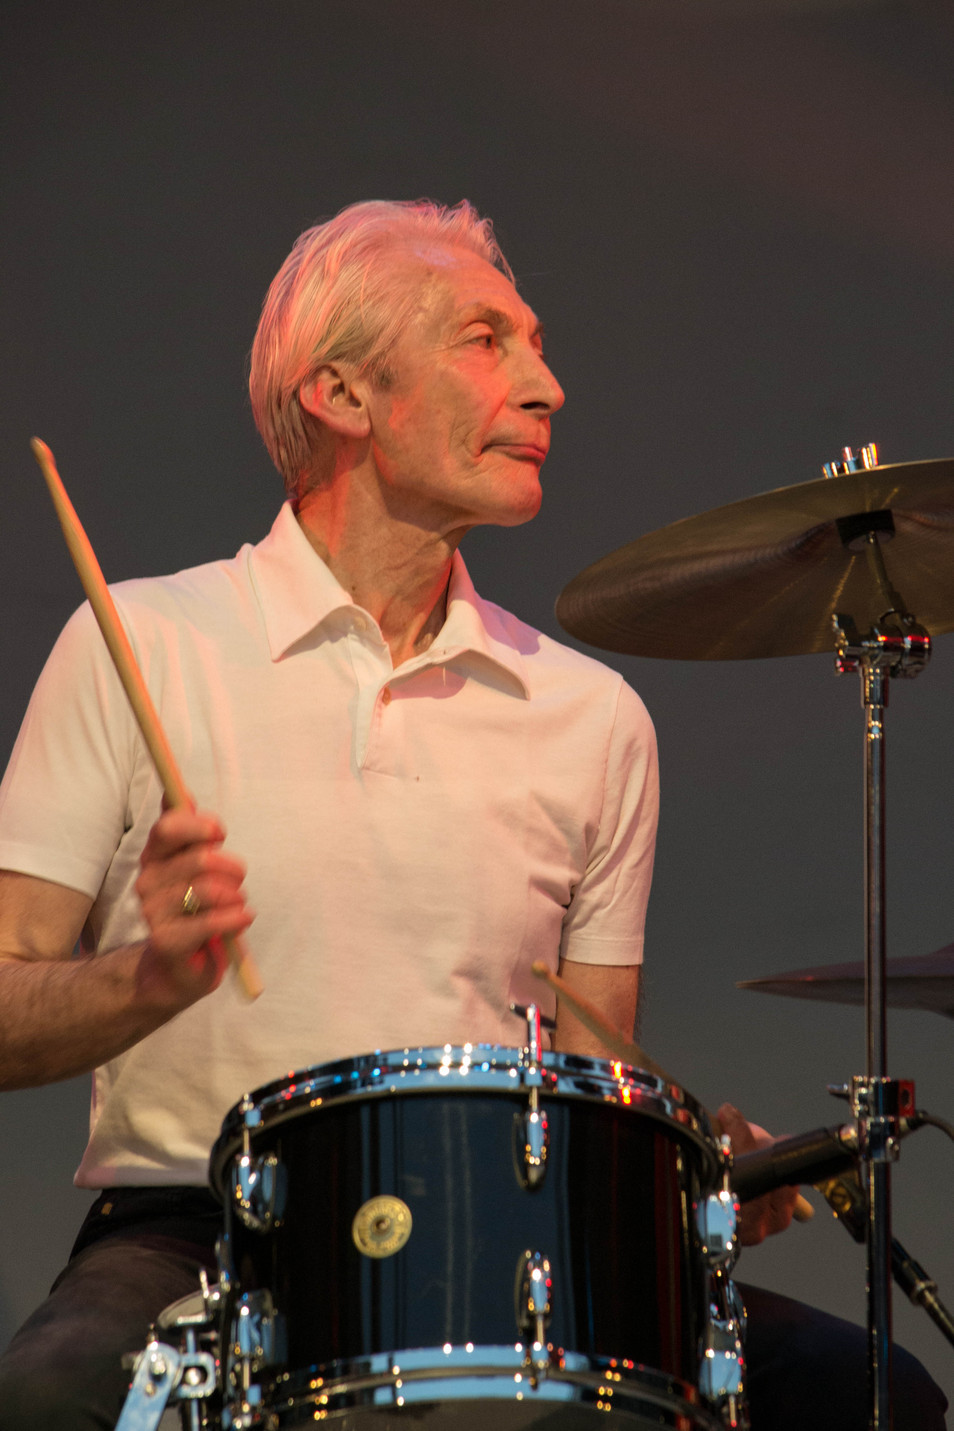 http://jazztimes.com/images/content/articles/0010/5297/Charlie_Watts_left__Lincoln_Center__6-12.jpg